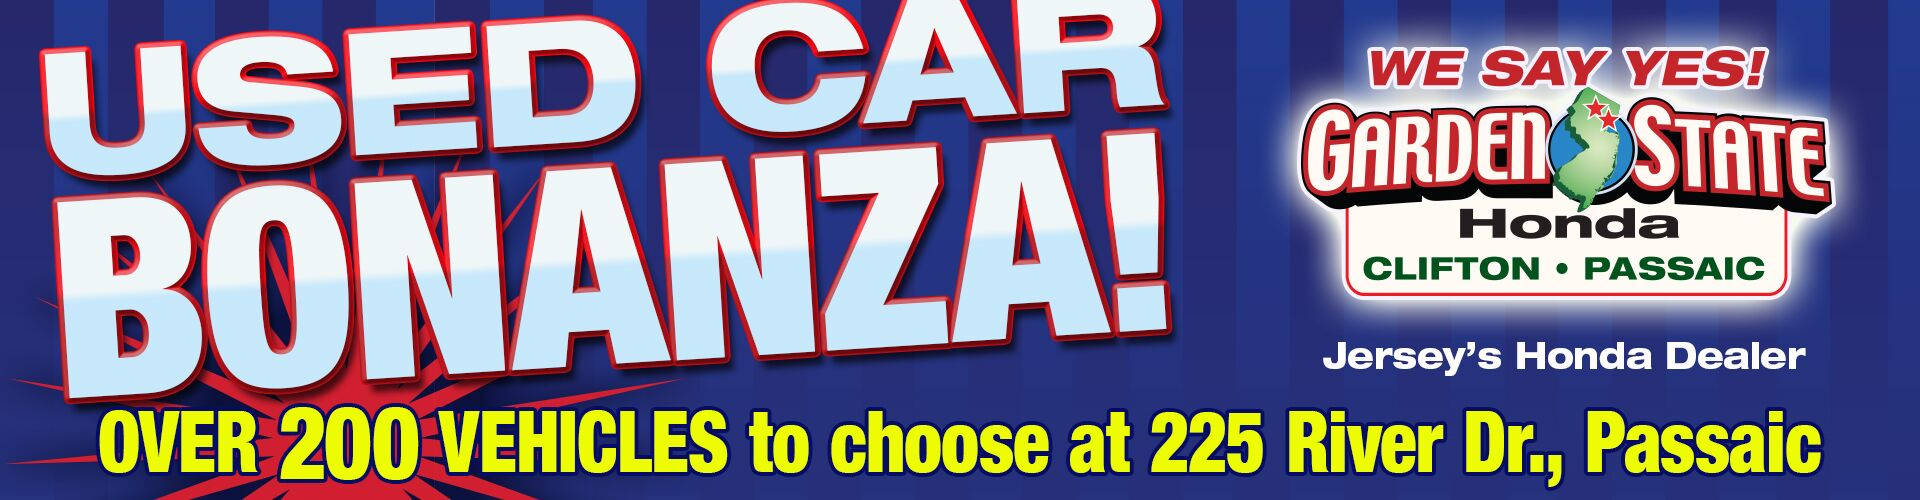 Used Car Bonanza